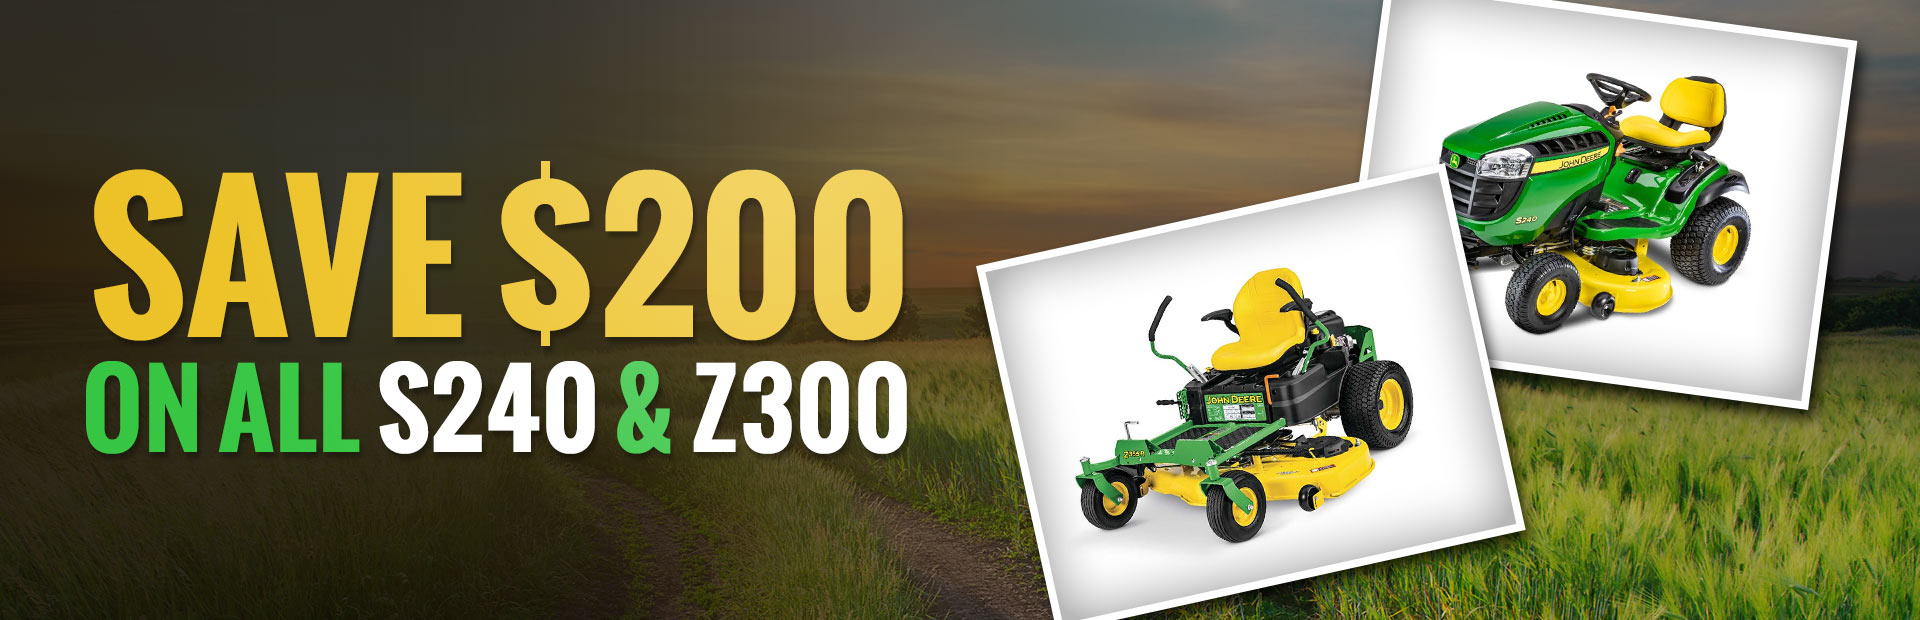 Save $200 on all John Deere S240 and Z300 models!